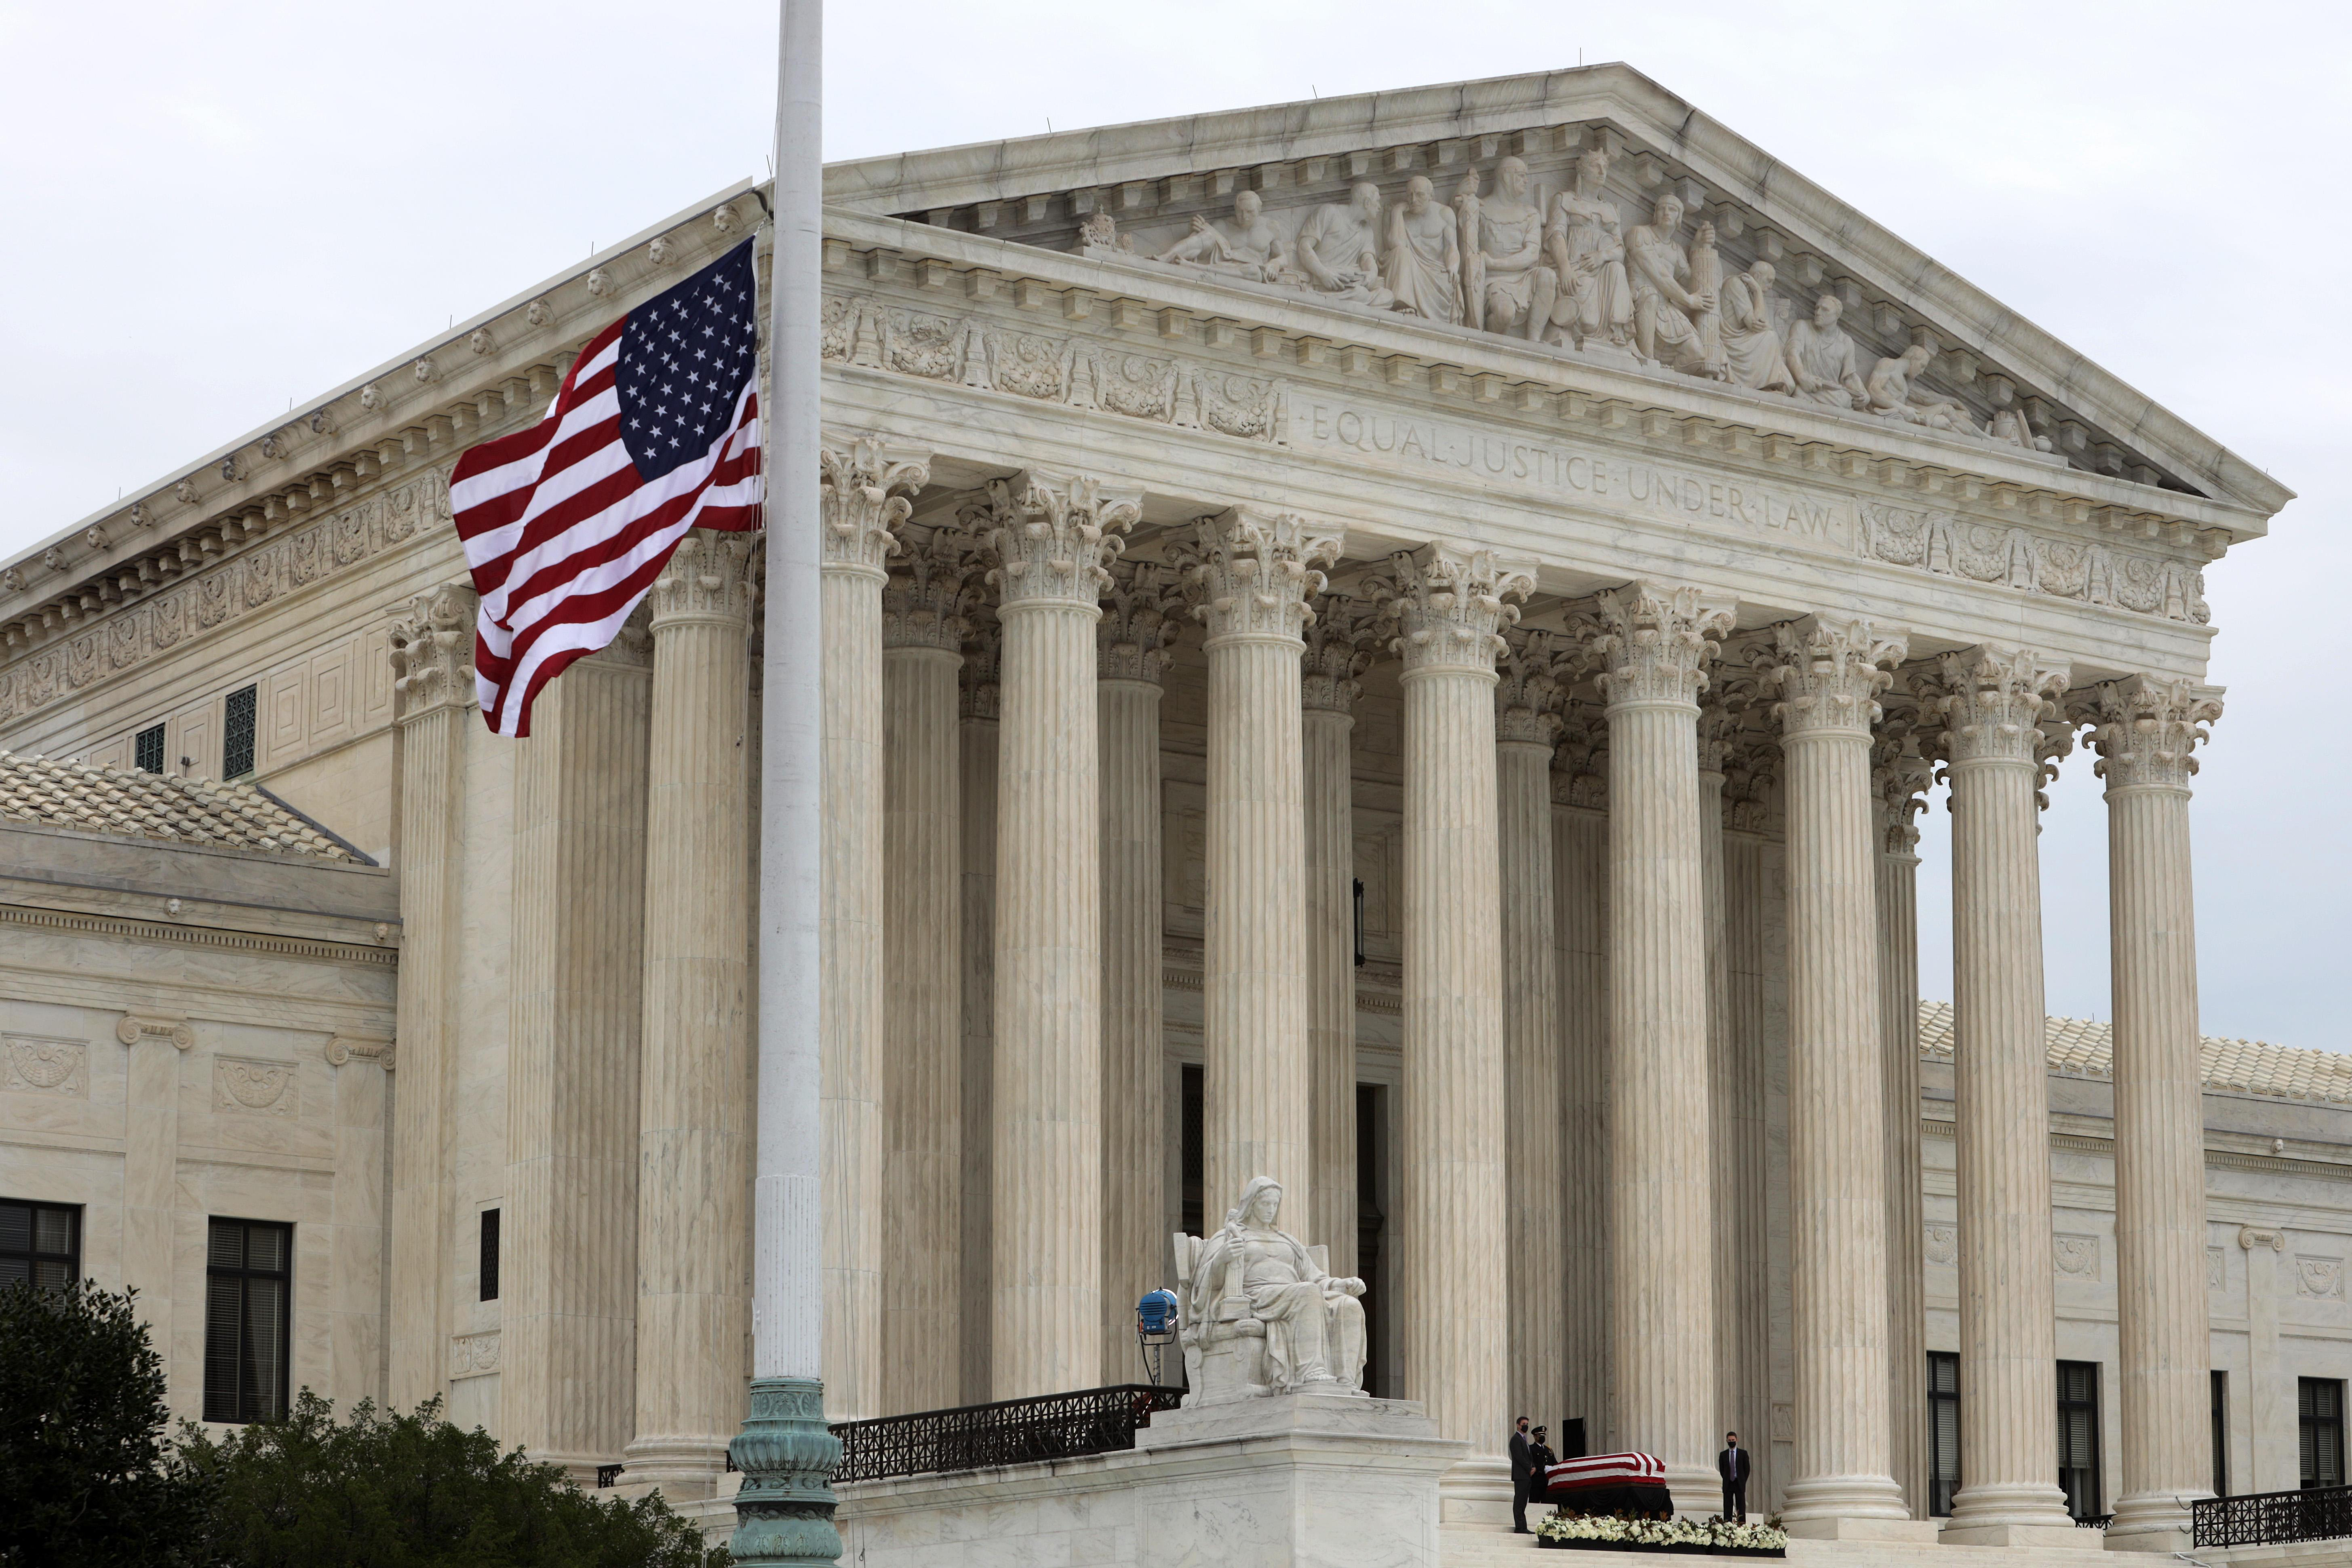 Supreme Court to hear case over congressional seat count